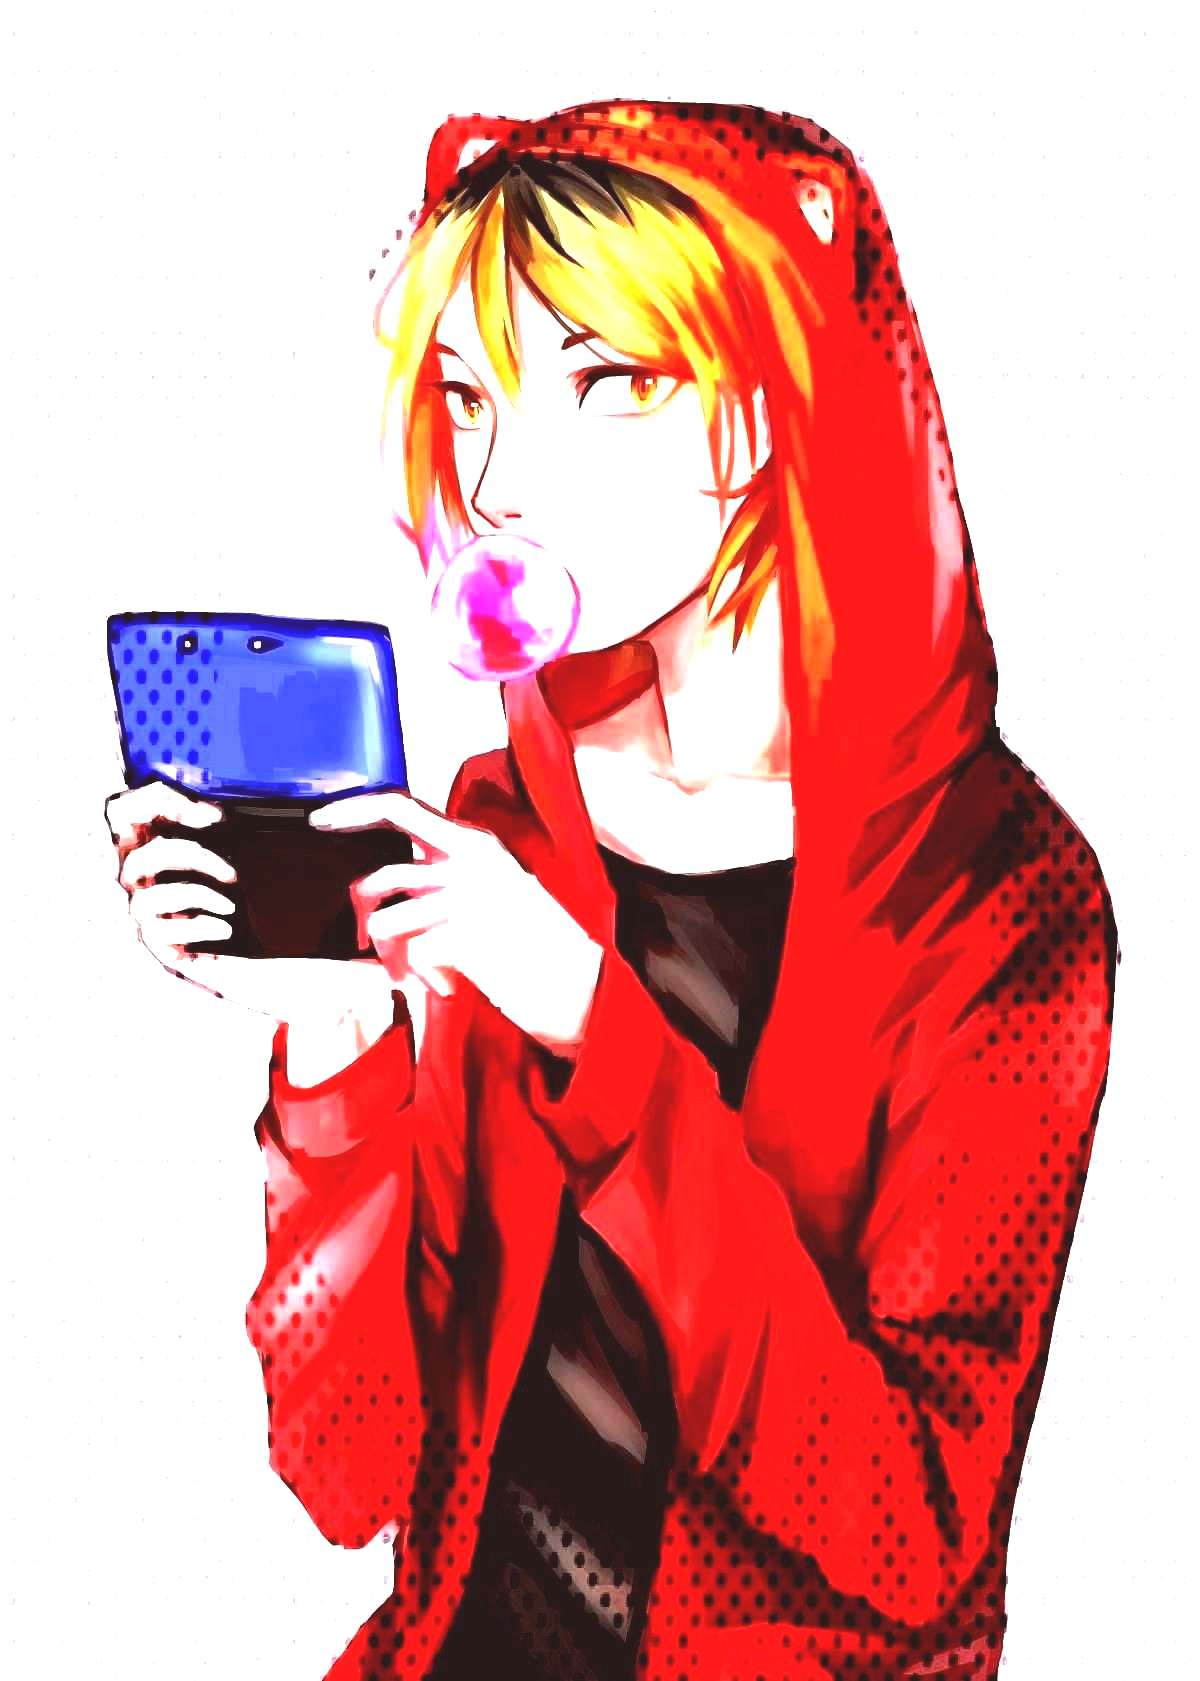 Kozume-whyisntnekoatsumeonthe3ds-Kenma -You can find Haikyuu and m...You can find Haikyuu and more